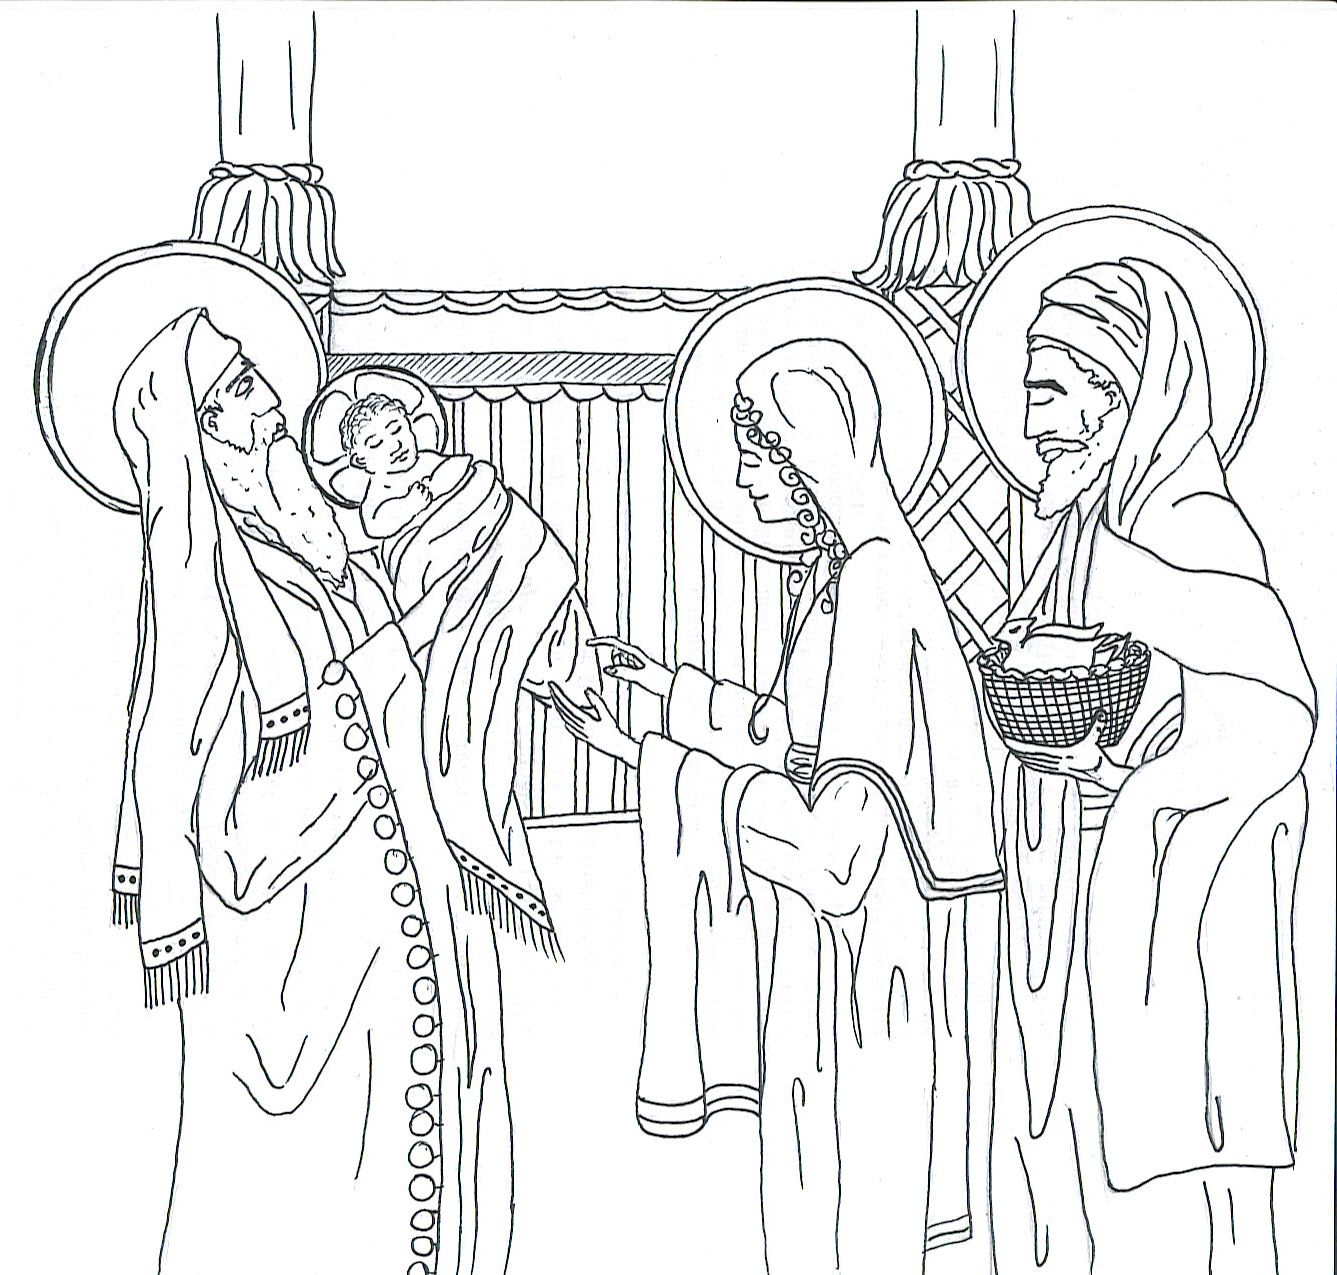 Catholic Coloring Page For Kids Of The Presentation In The